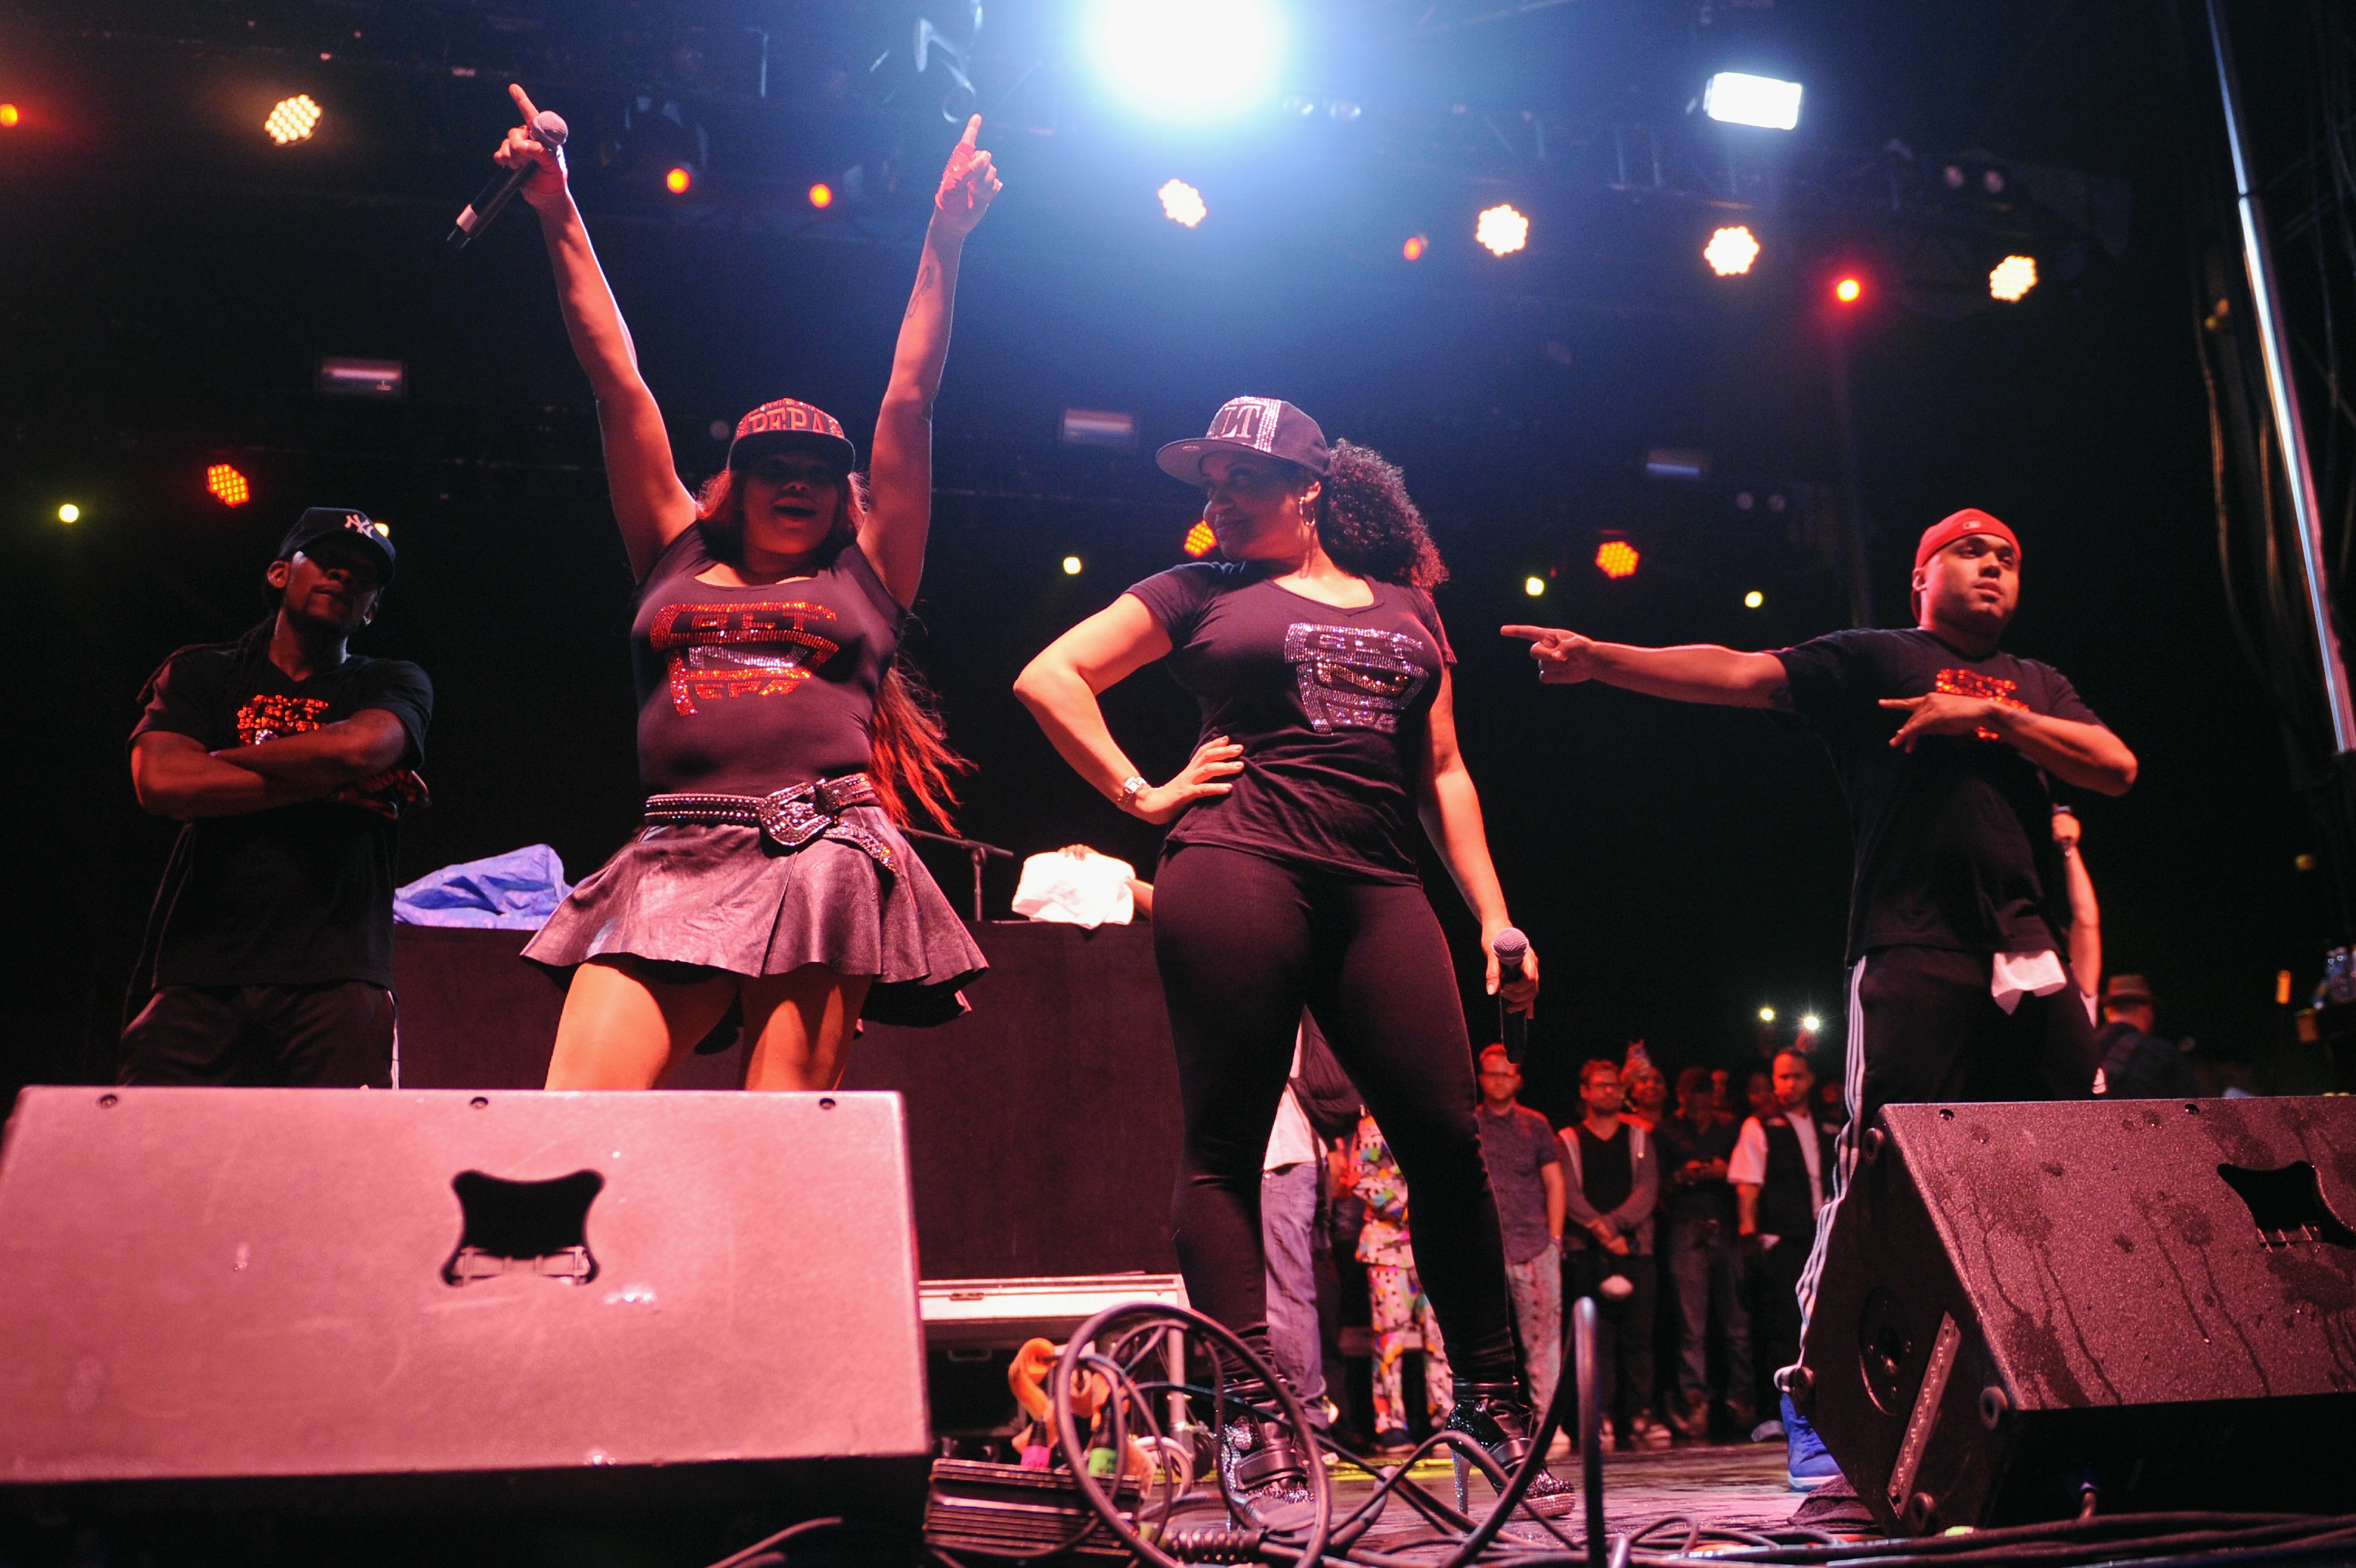 90s fest, 90s decade, 90s music, 90s style, 90s fest moments, best of 90s fest, brooklyn, nyc events, 90s fest, 90s music, 90s movies, best of the 90's, coolio, salt n pepa,